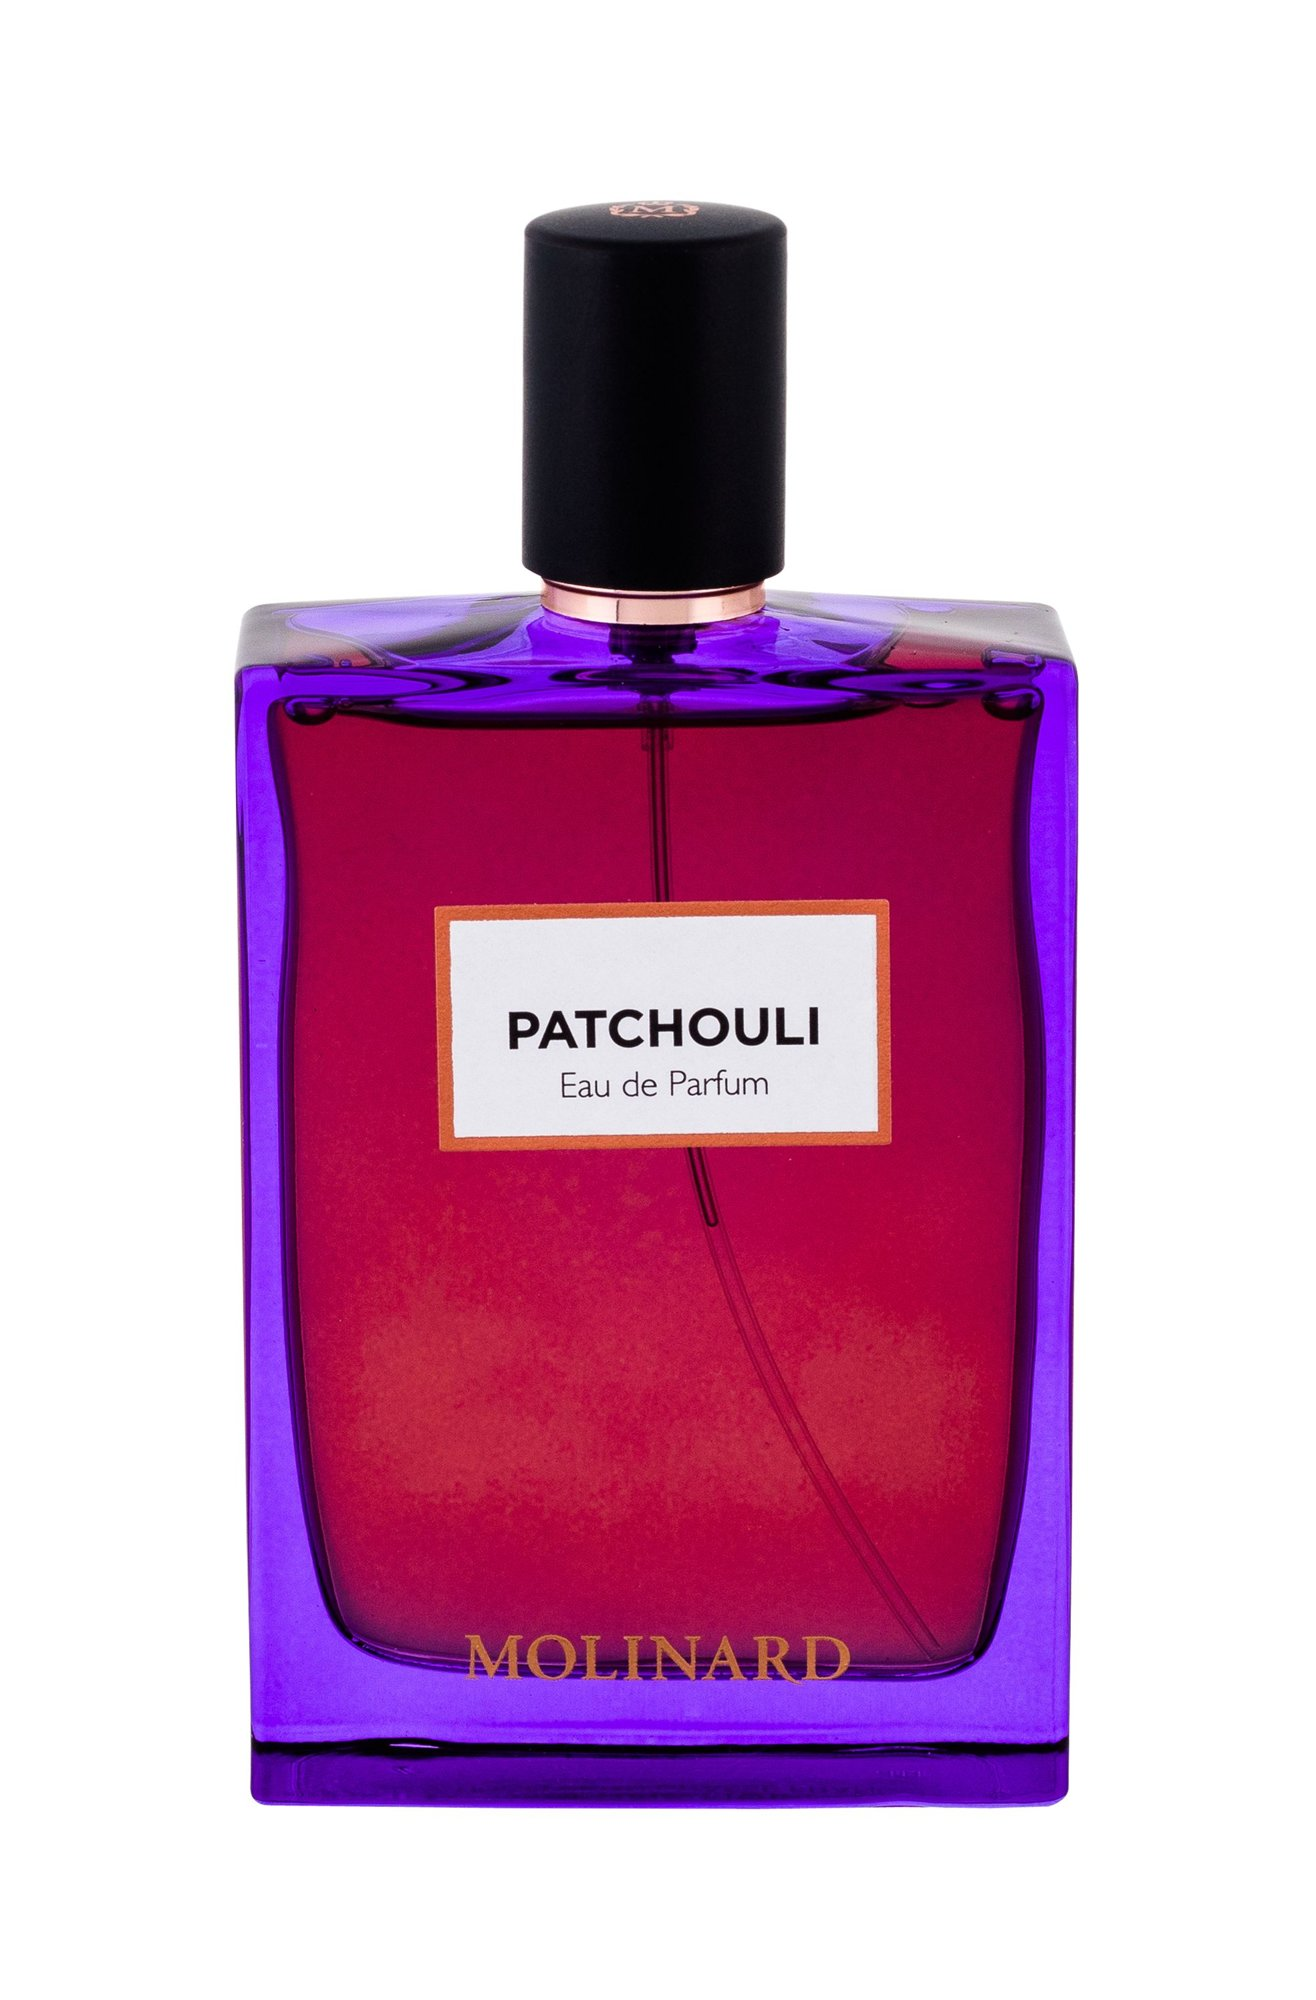 Molinard Les Elements Collection Patchouli Eau de Parfum 75ml